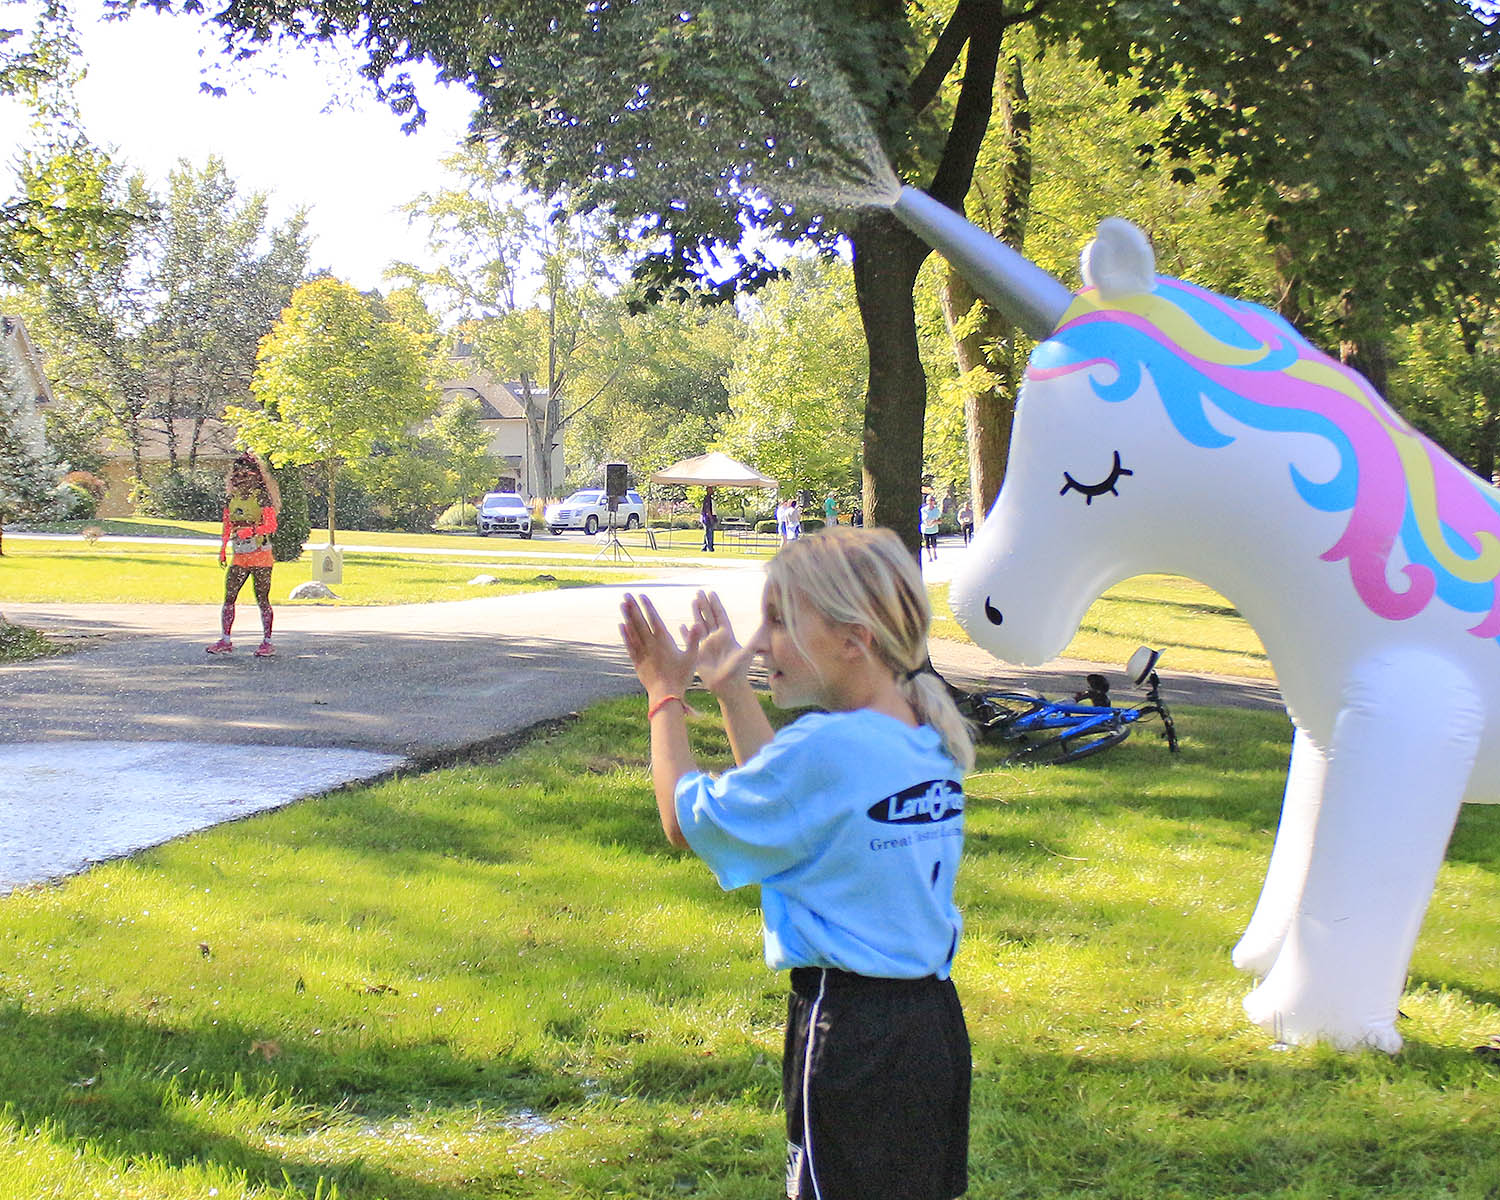 Georgia Bruni claps as runners pass her home during the 2019 Hidden Gem Half Marathon. She and her mom, Jeanette Bruni, set up a unicorn water spray to cool off runners. (Chronicle file photo)